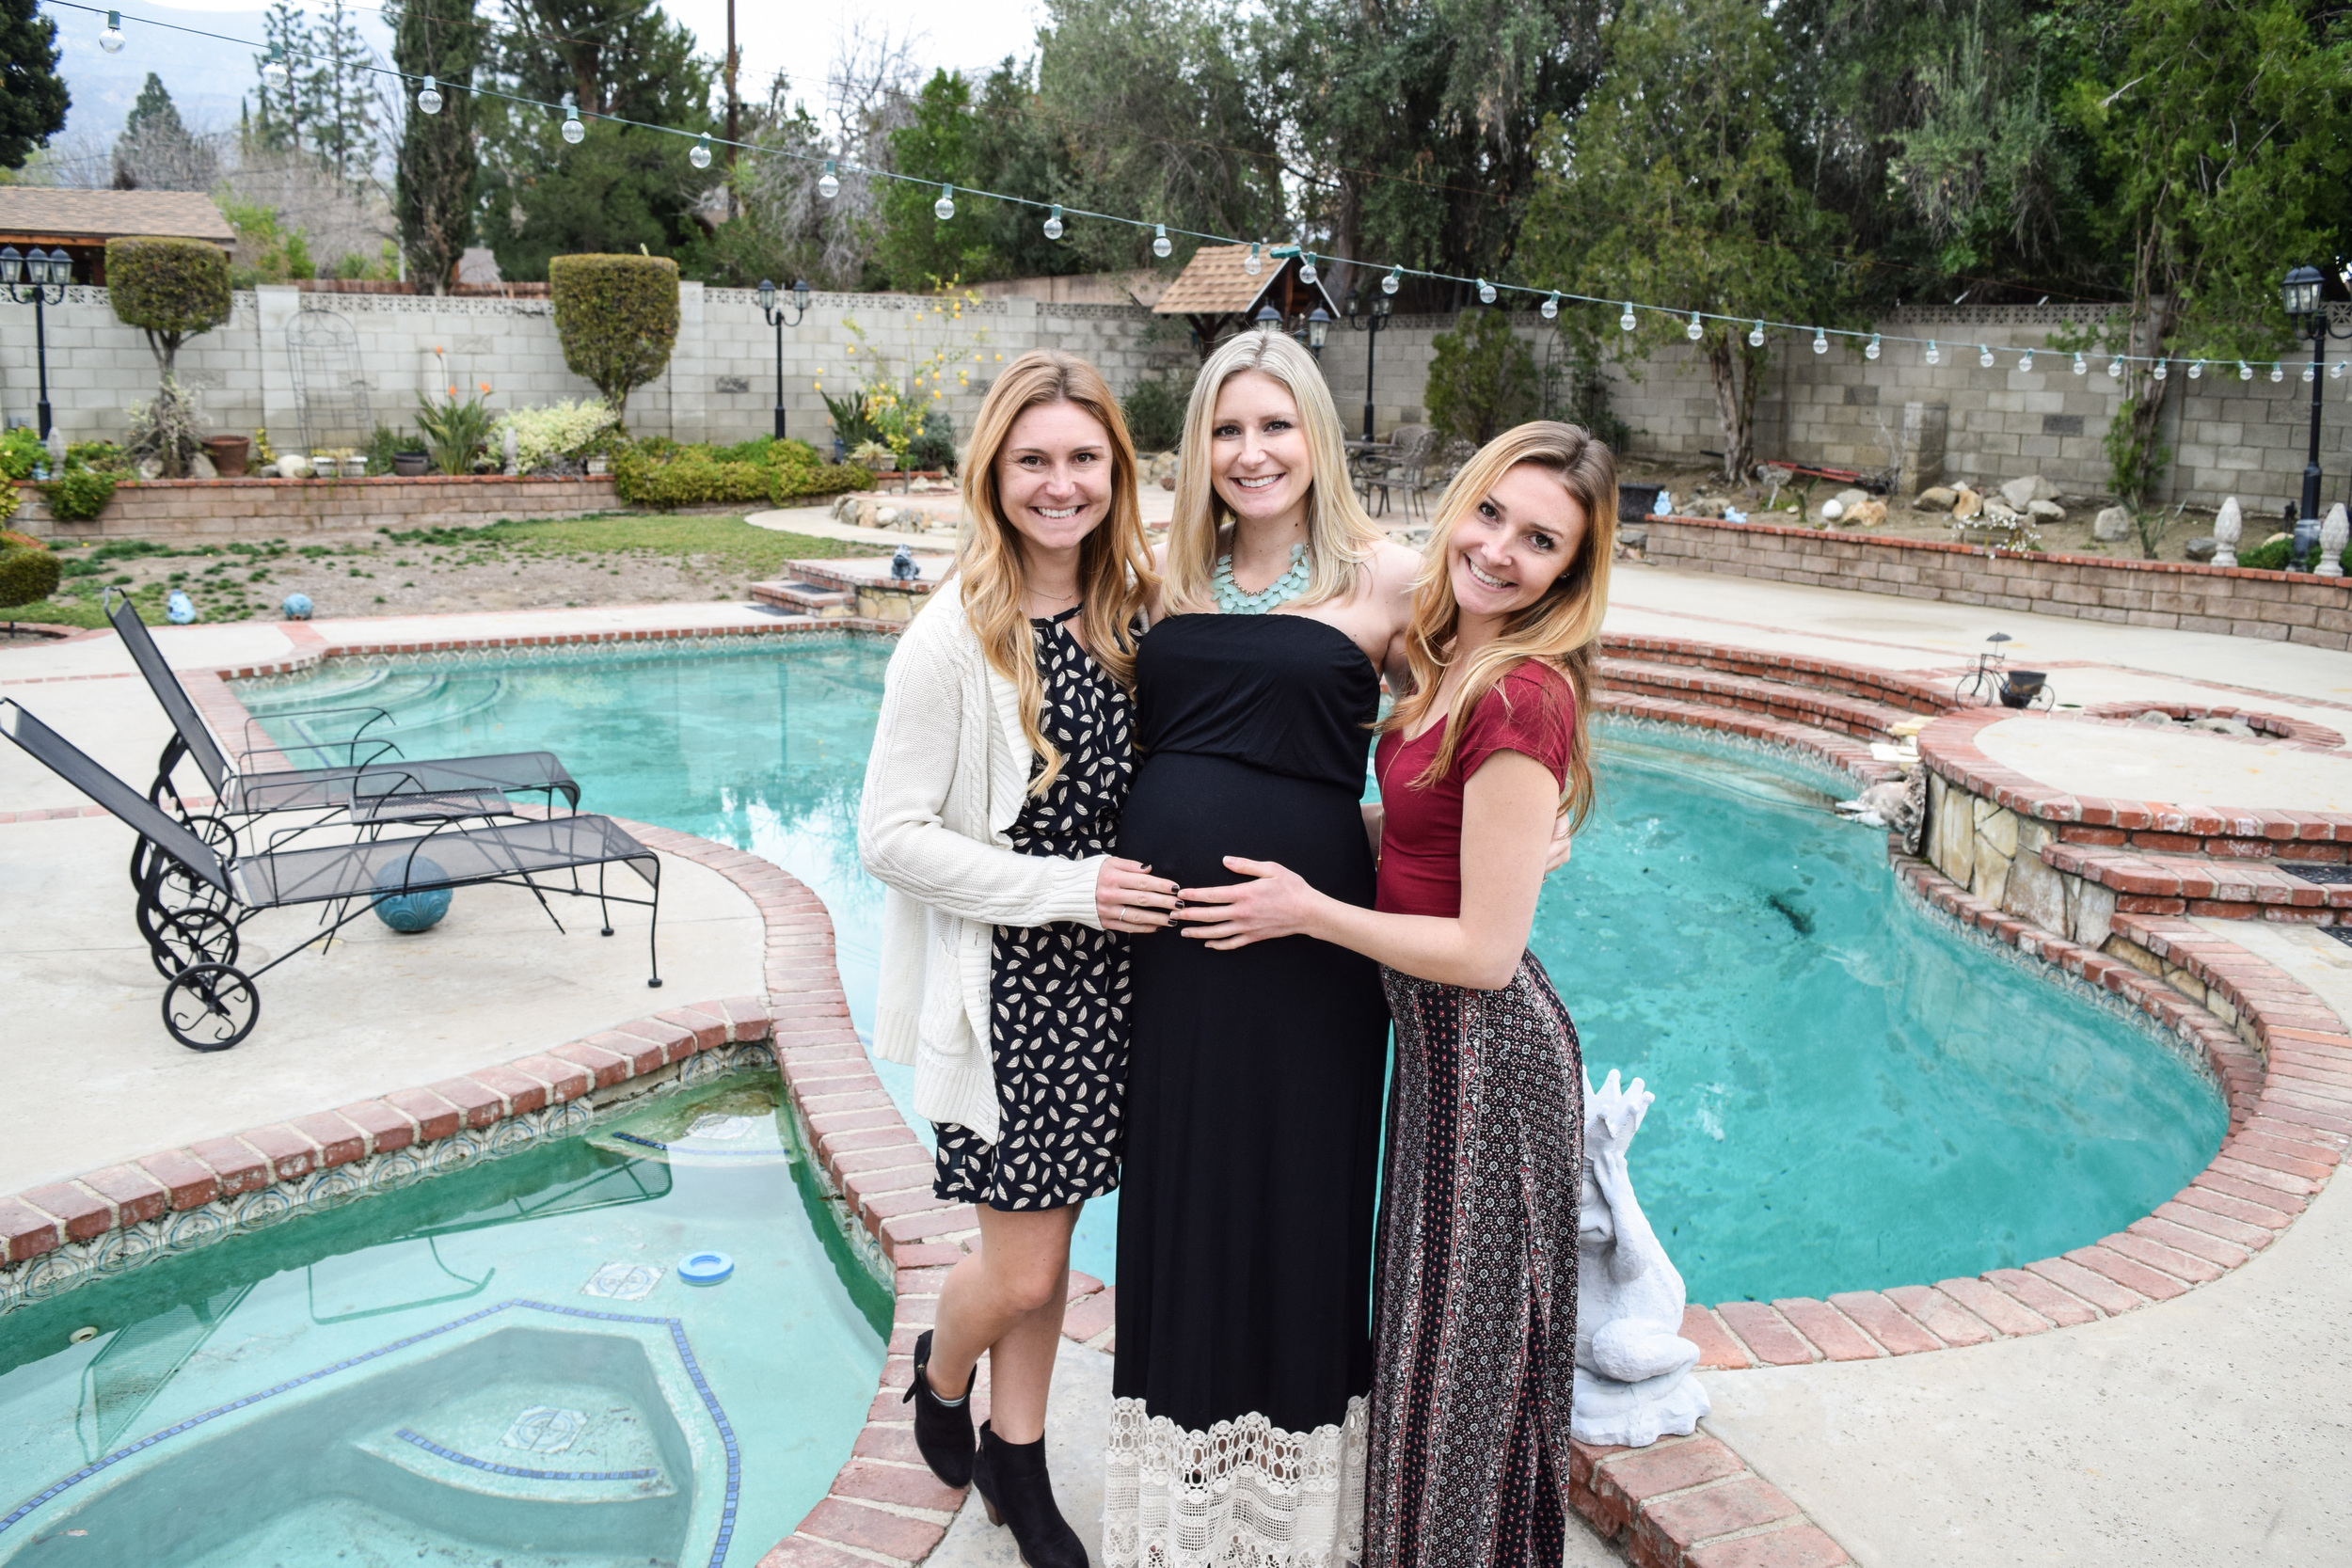 Auntie Nicole (left), Mommy-to-Be (middle), Auntie Alicia (right)